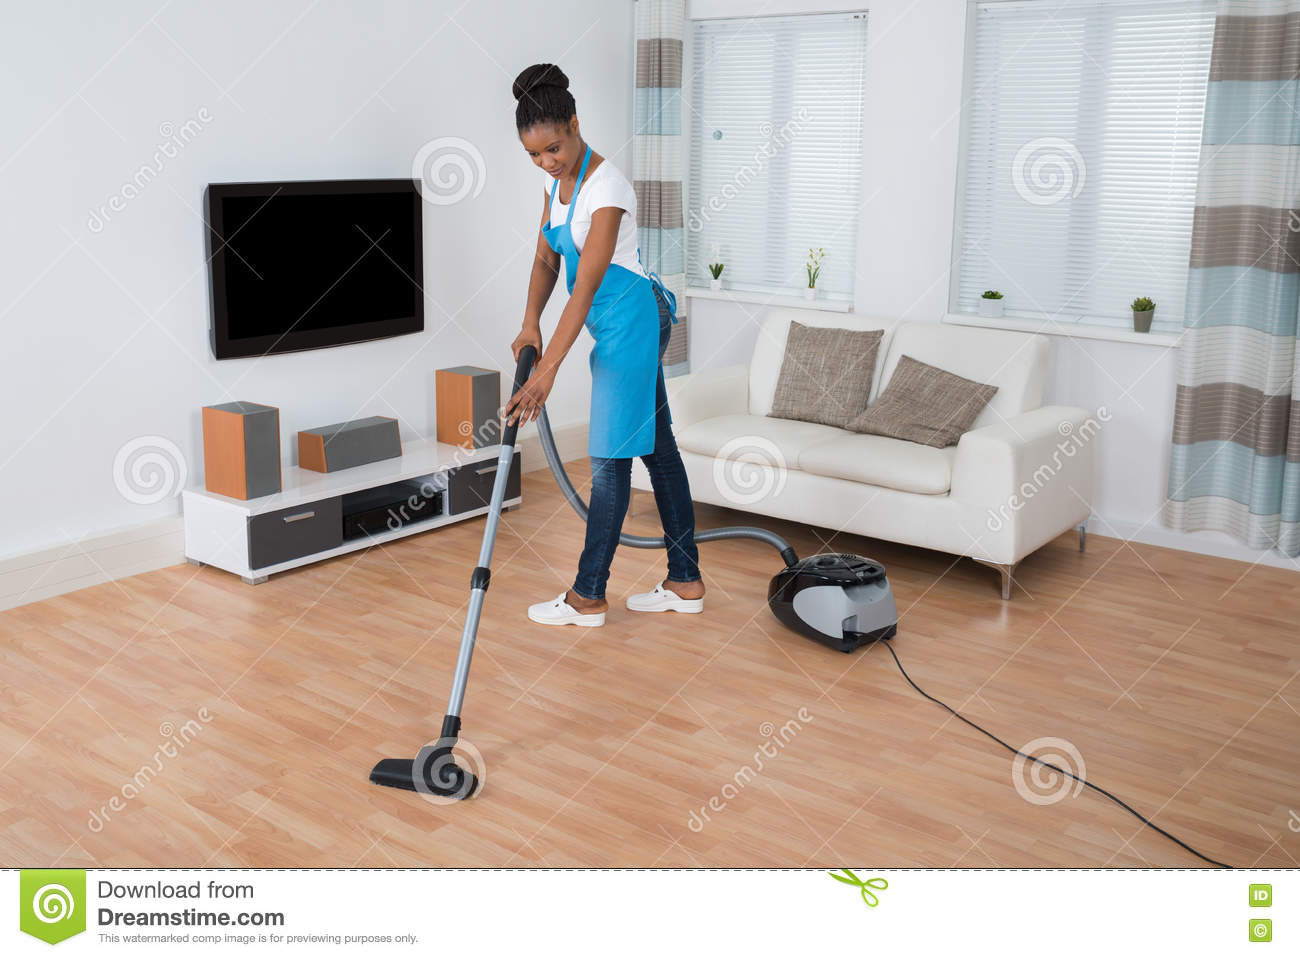 hardwood floor vacuum and mop of woman cleaning floor with vacuum cleaner stock image image of in woman cleaning floor with vacuum cleaner